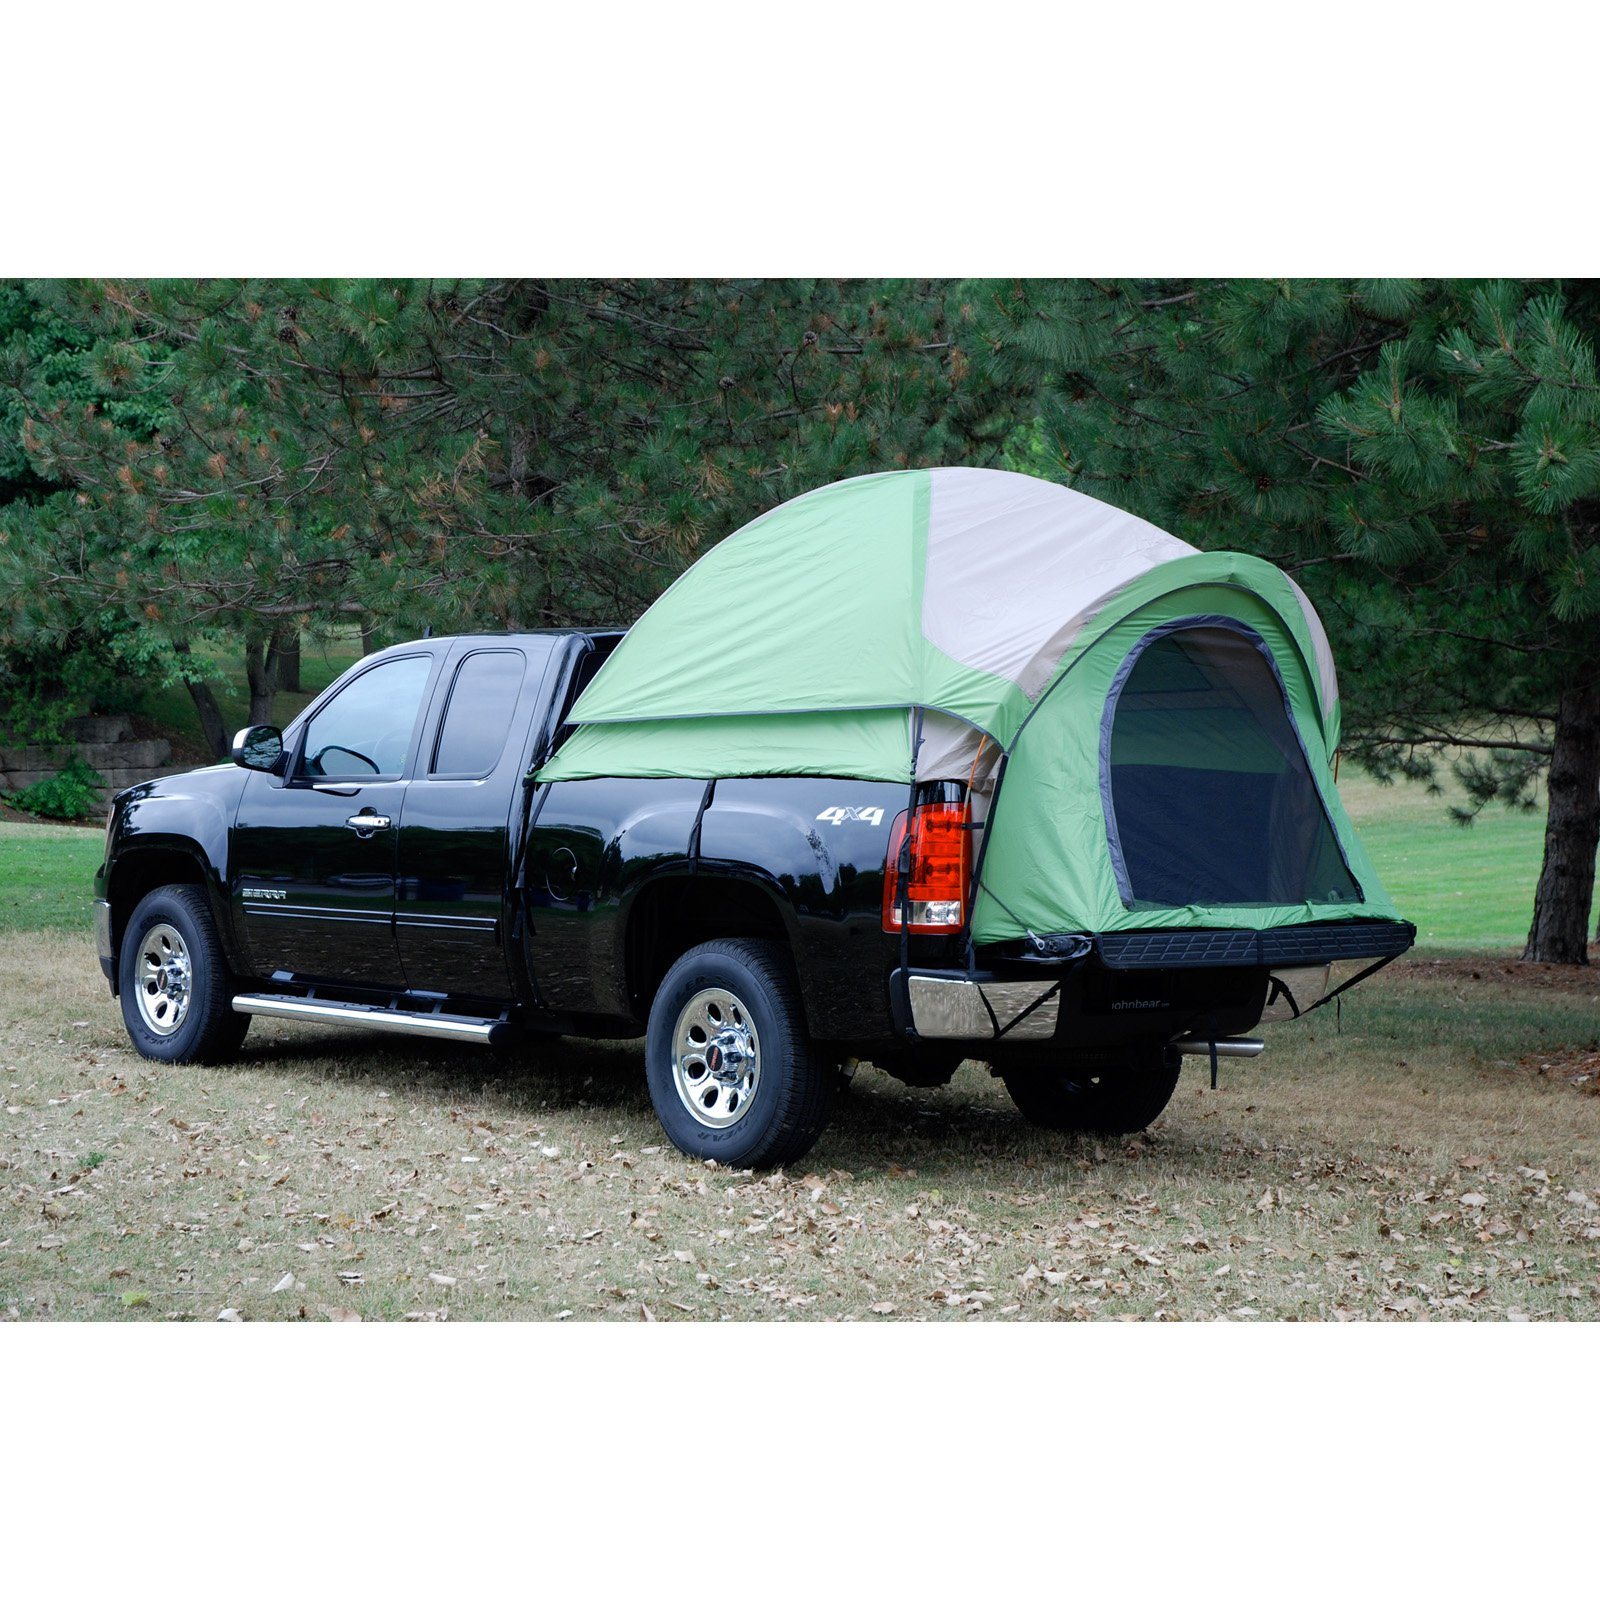 Napier Outdoors Backroadz Truck Tent  sc 1 st  Walmart & Napier Outdoors Backroadz Truck Tent - Walmart.com